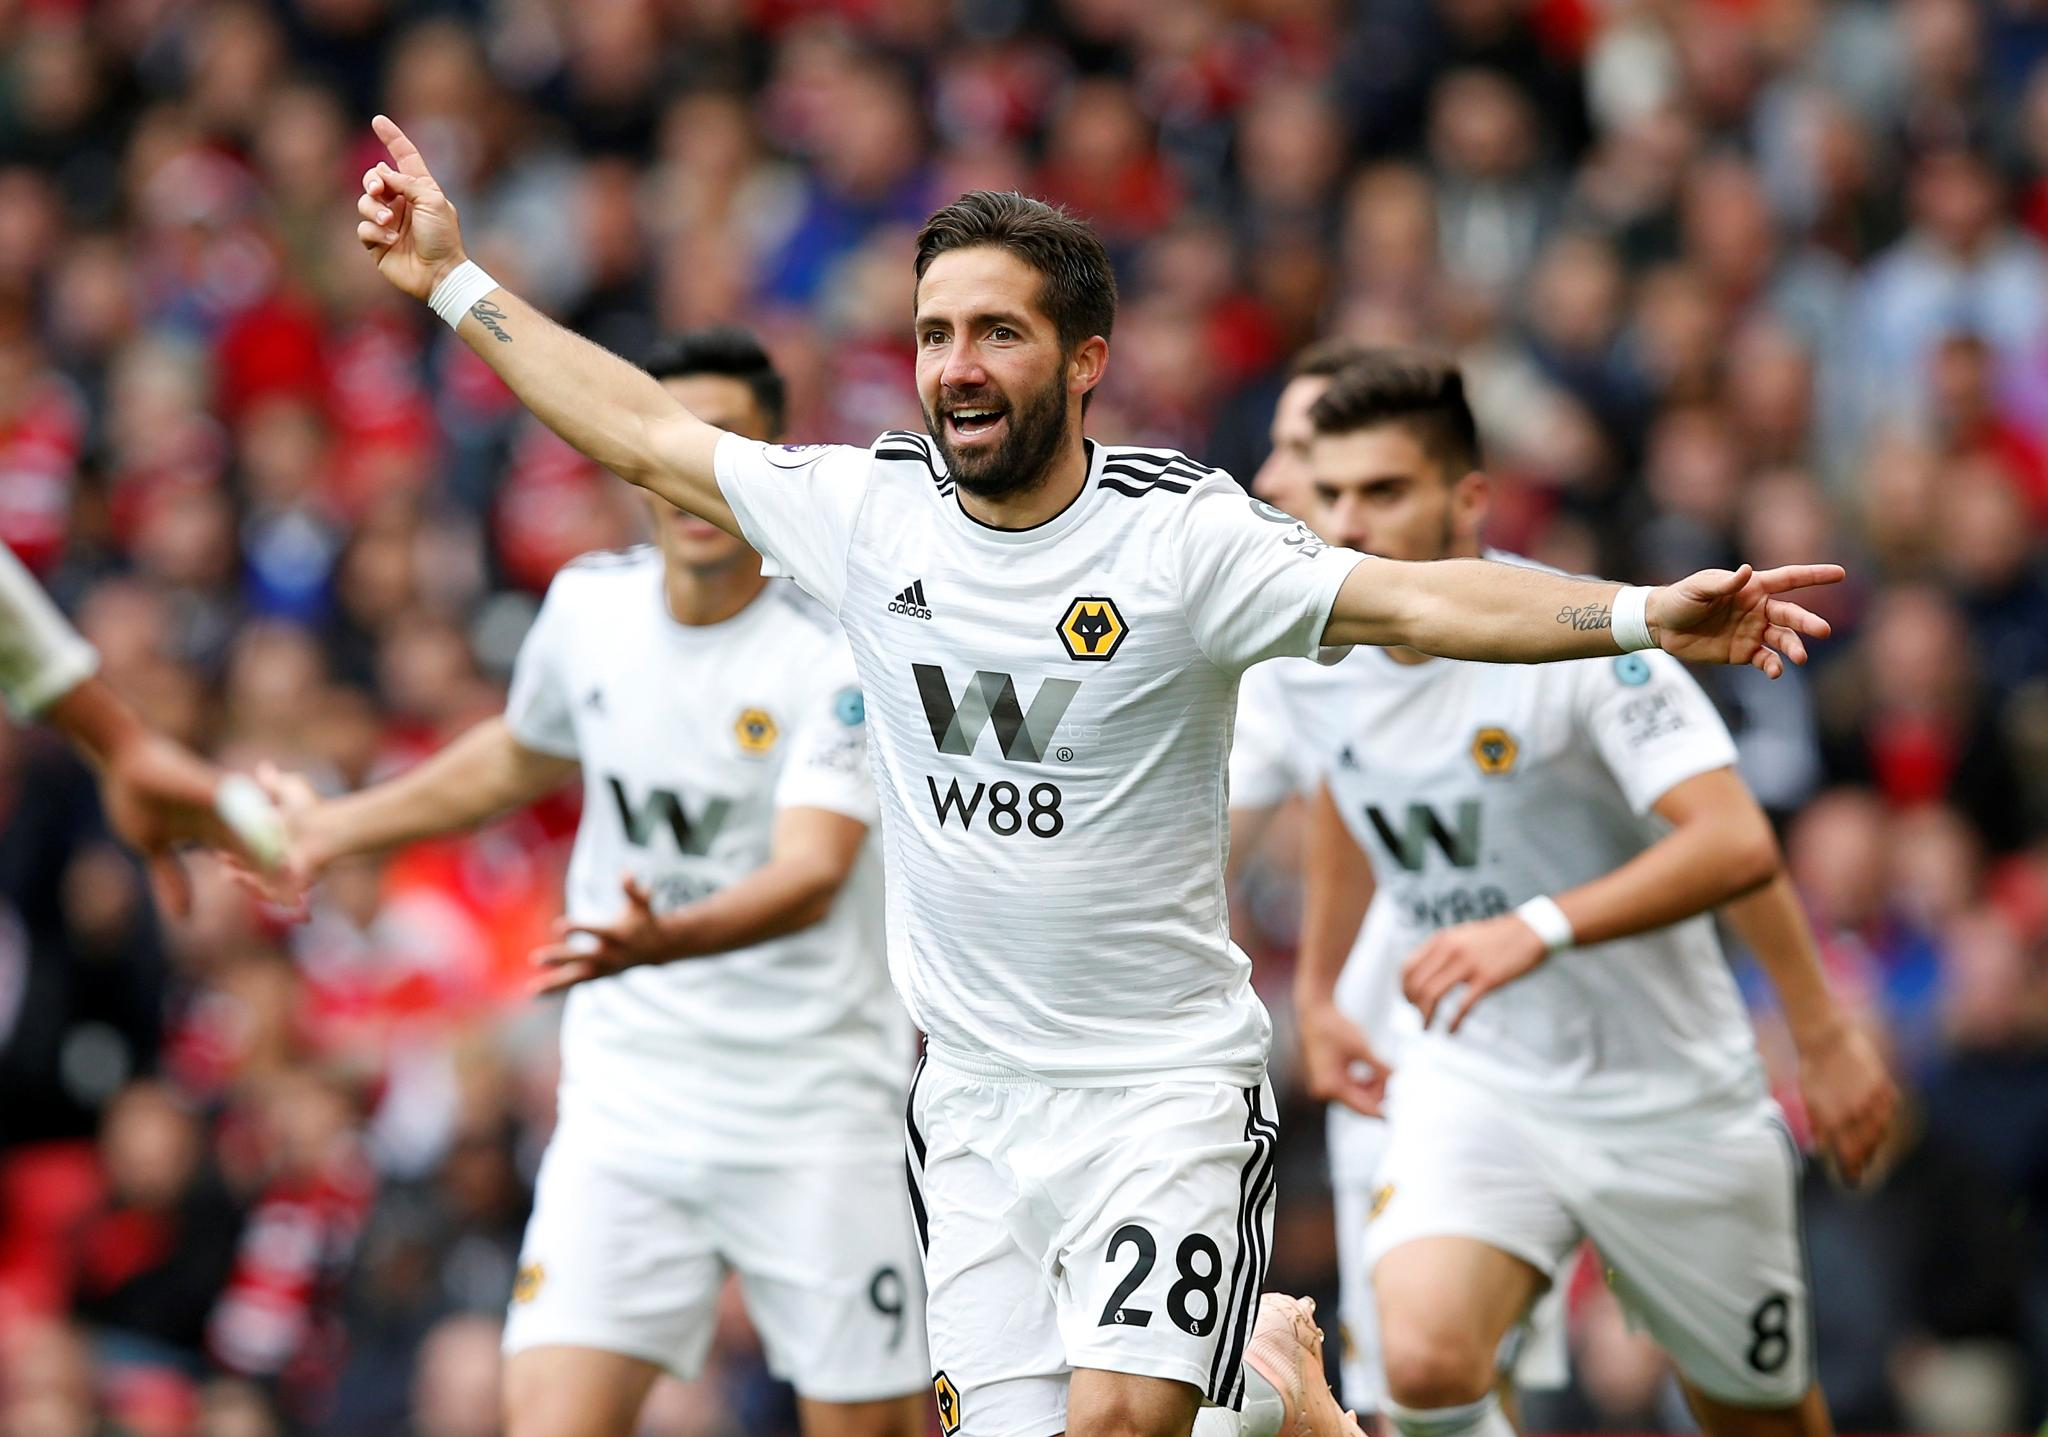 ��Wow Moutinho  Man Utd 1-1 Wolves (60 mins)  #MUNWOL https://t.co/tbZ0Bv8qk7